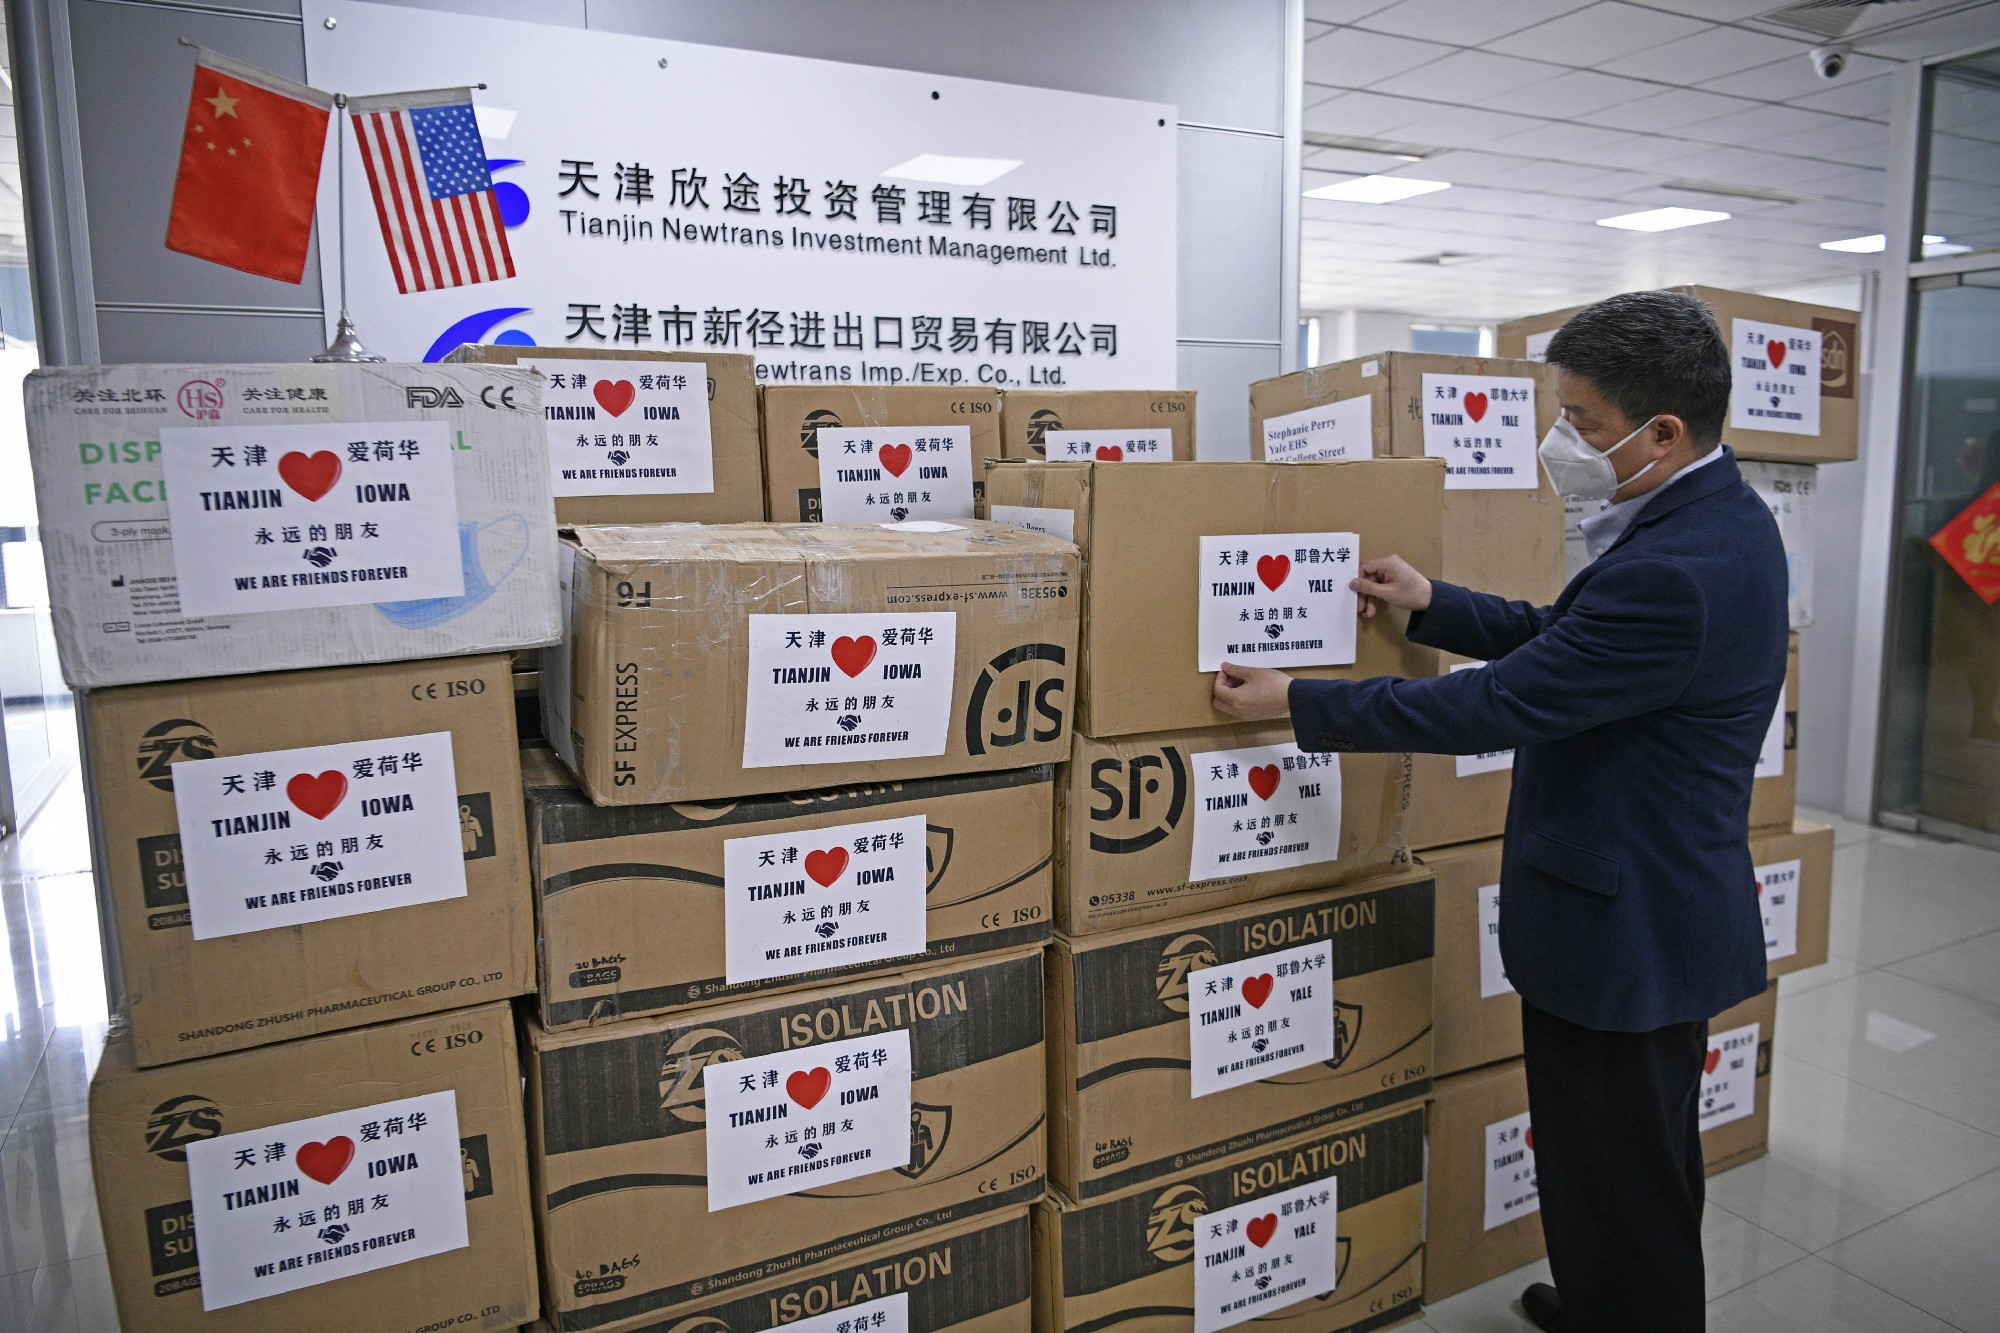 A worker arranges boxes of medical supplies, including 1,000 KN95 masks, 2,000 surgical masks, 100 protective suits and so on